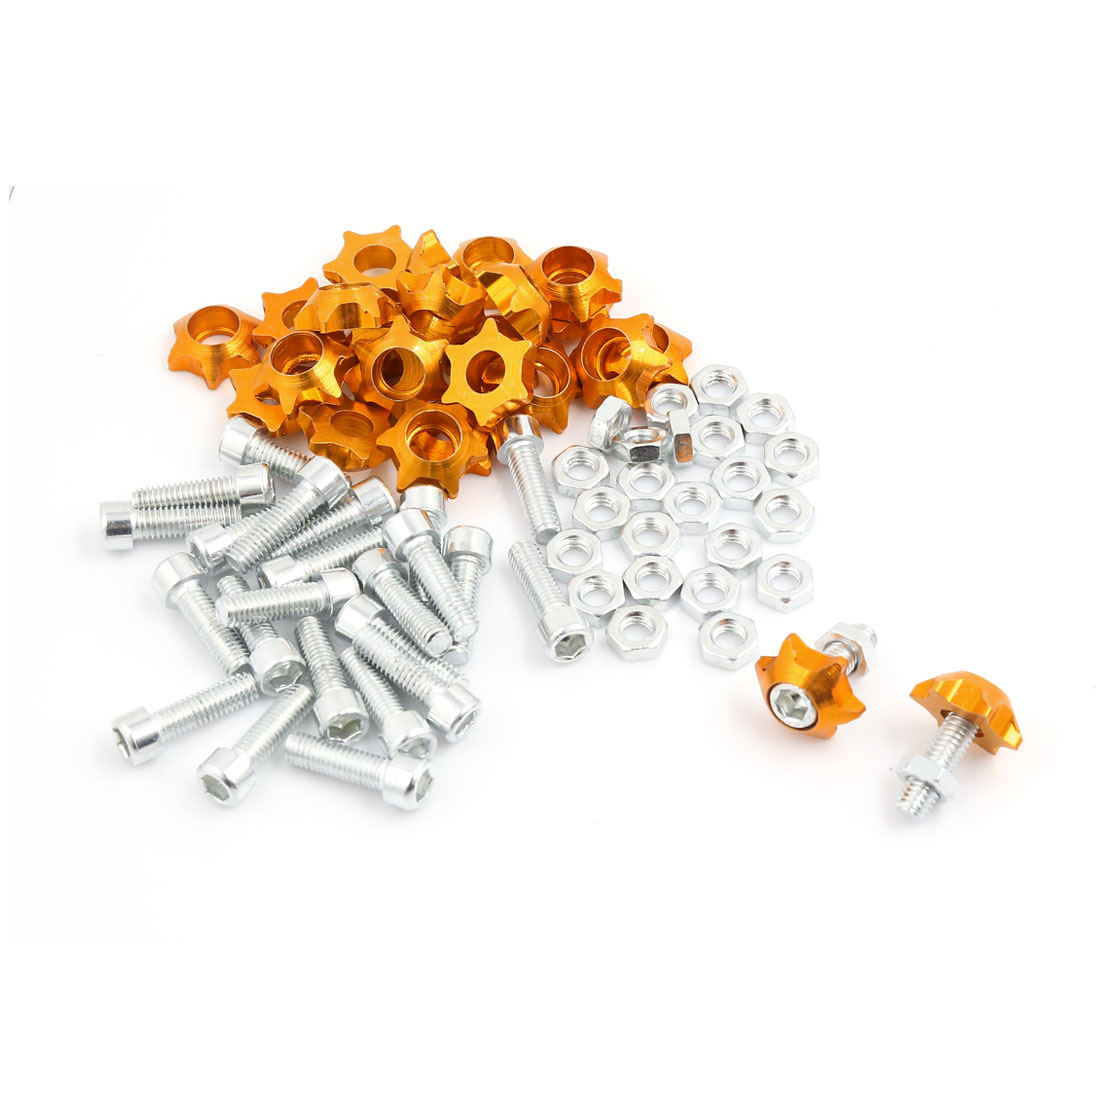 25pcs M6 Star Style License Plate Frame Bolt Screws Gold Tone for Motorcycle Truck